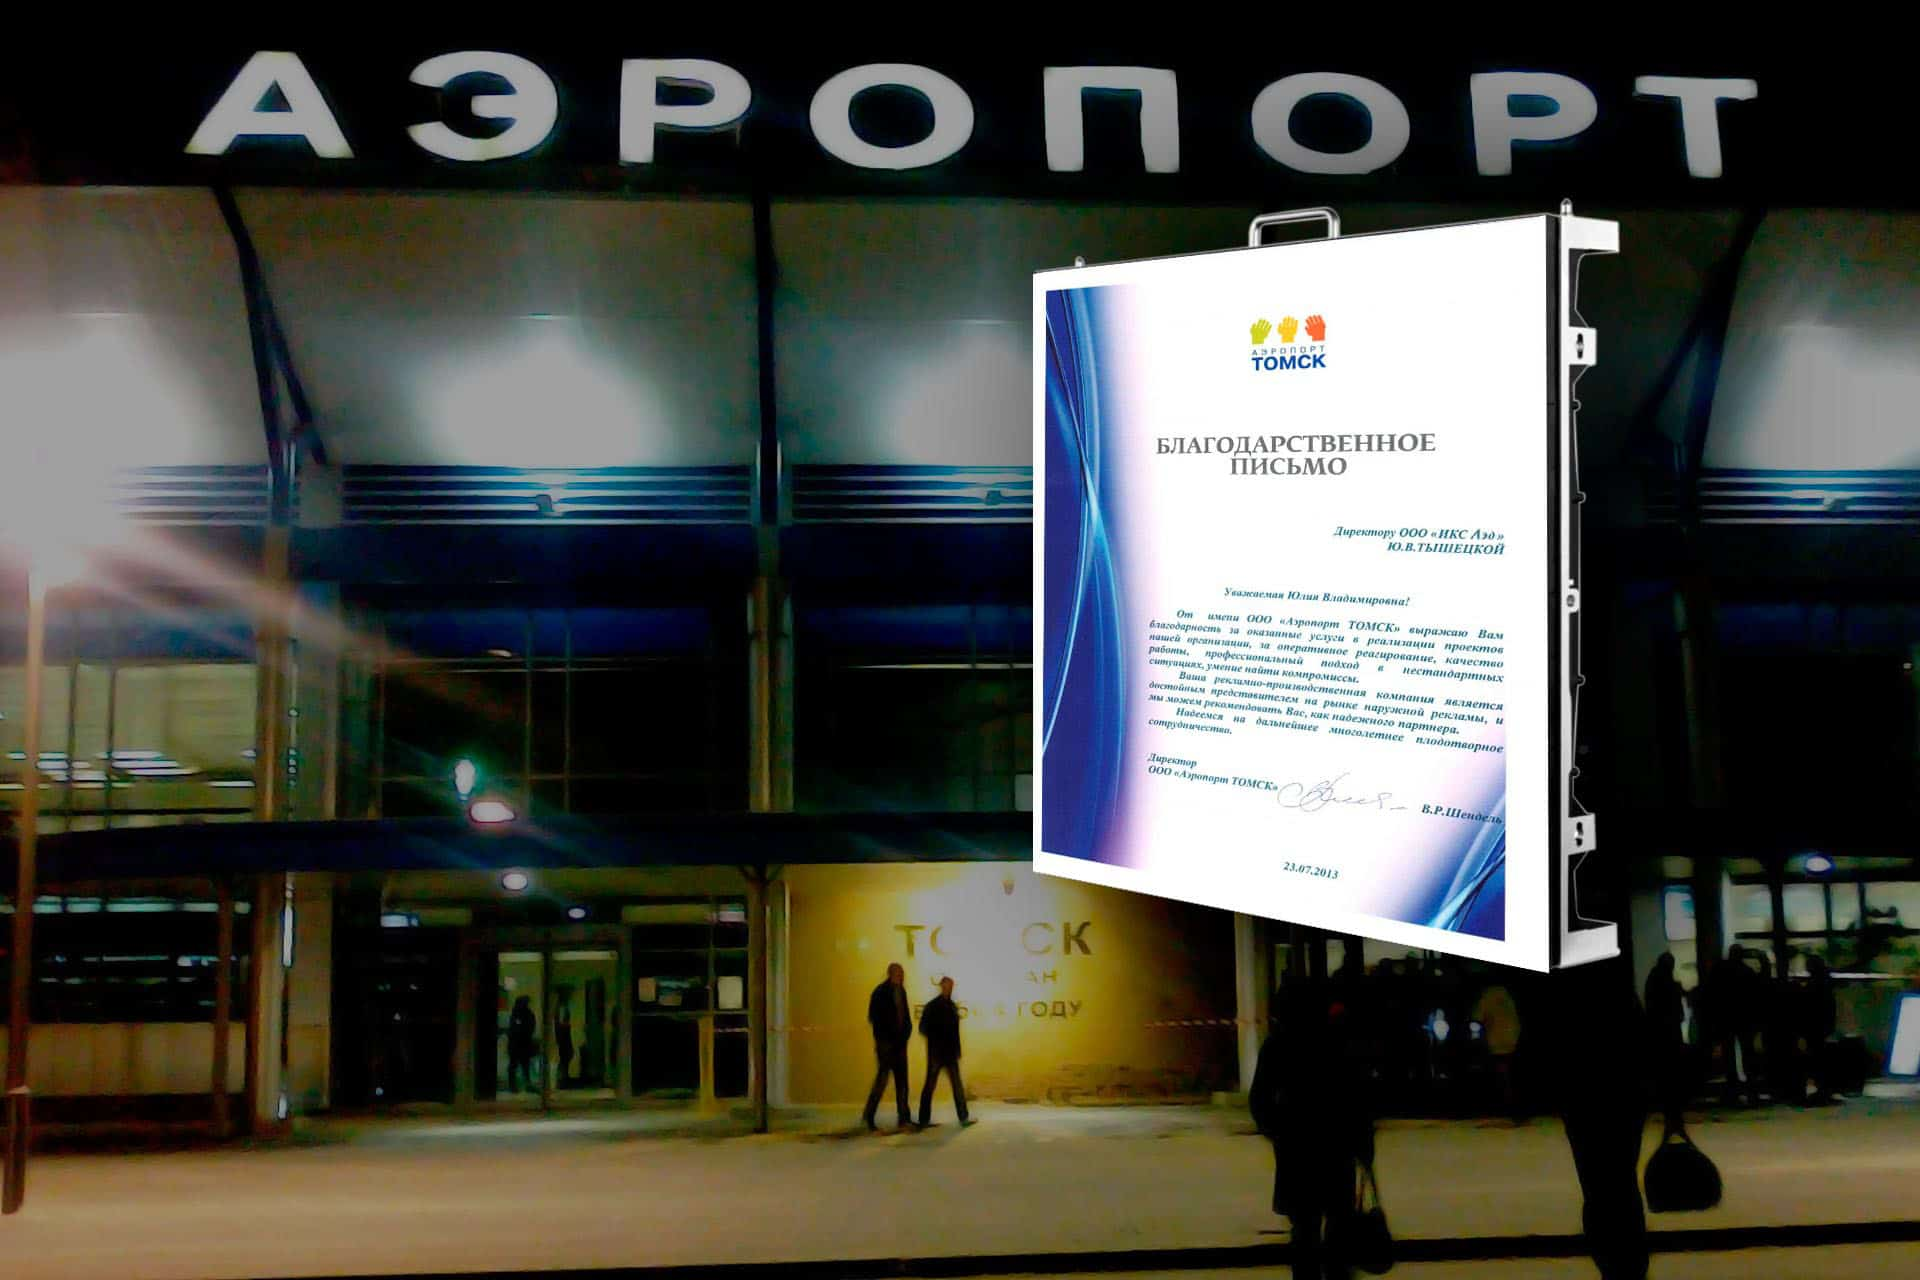 A letter of thanks from Аэропорт.